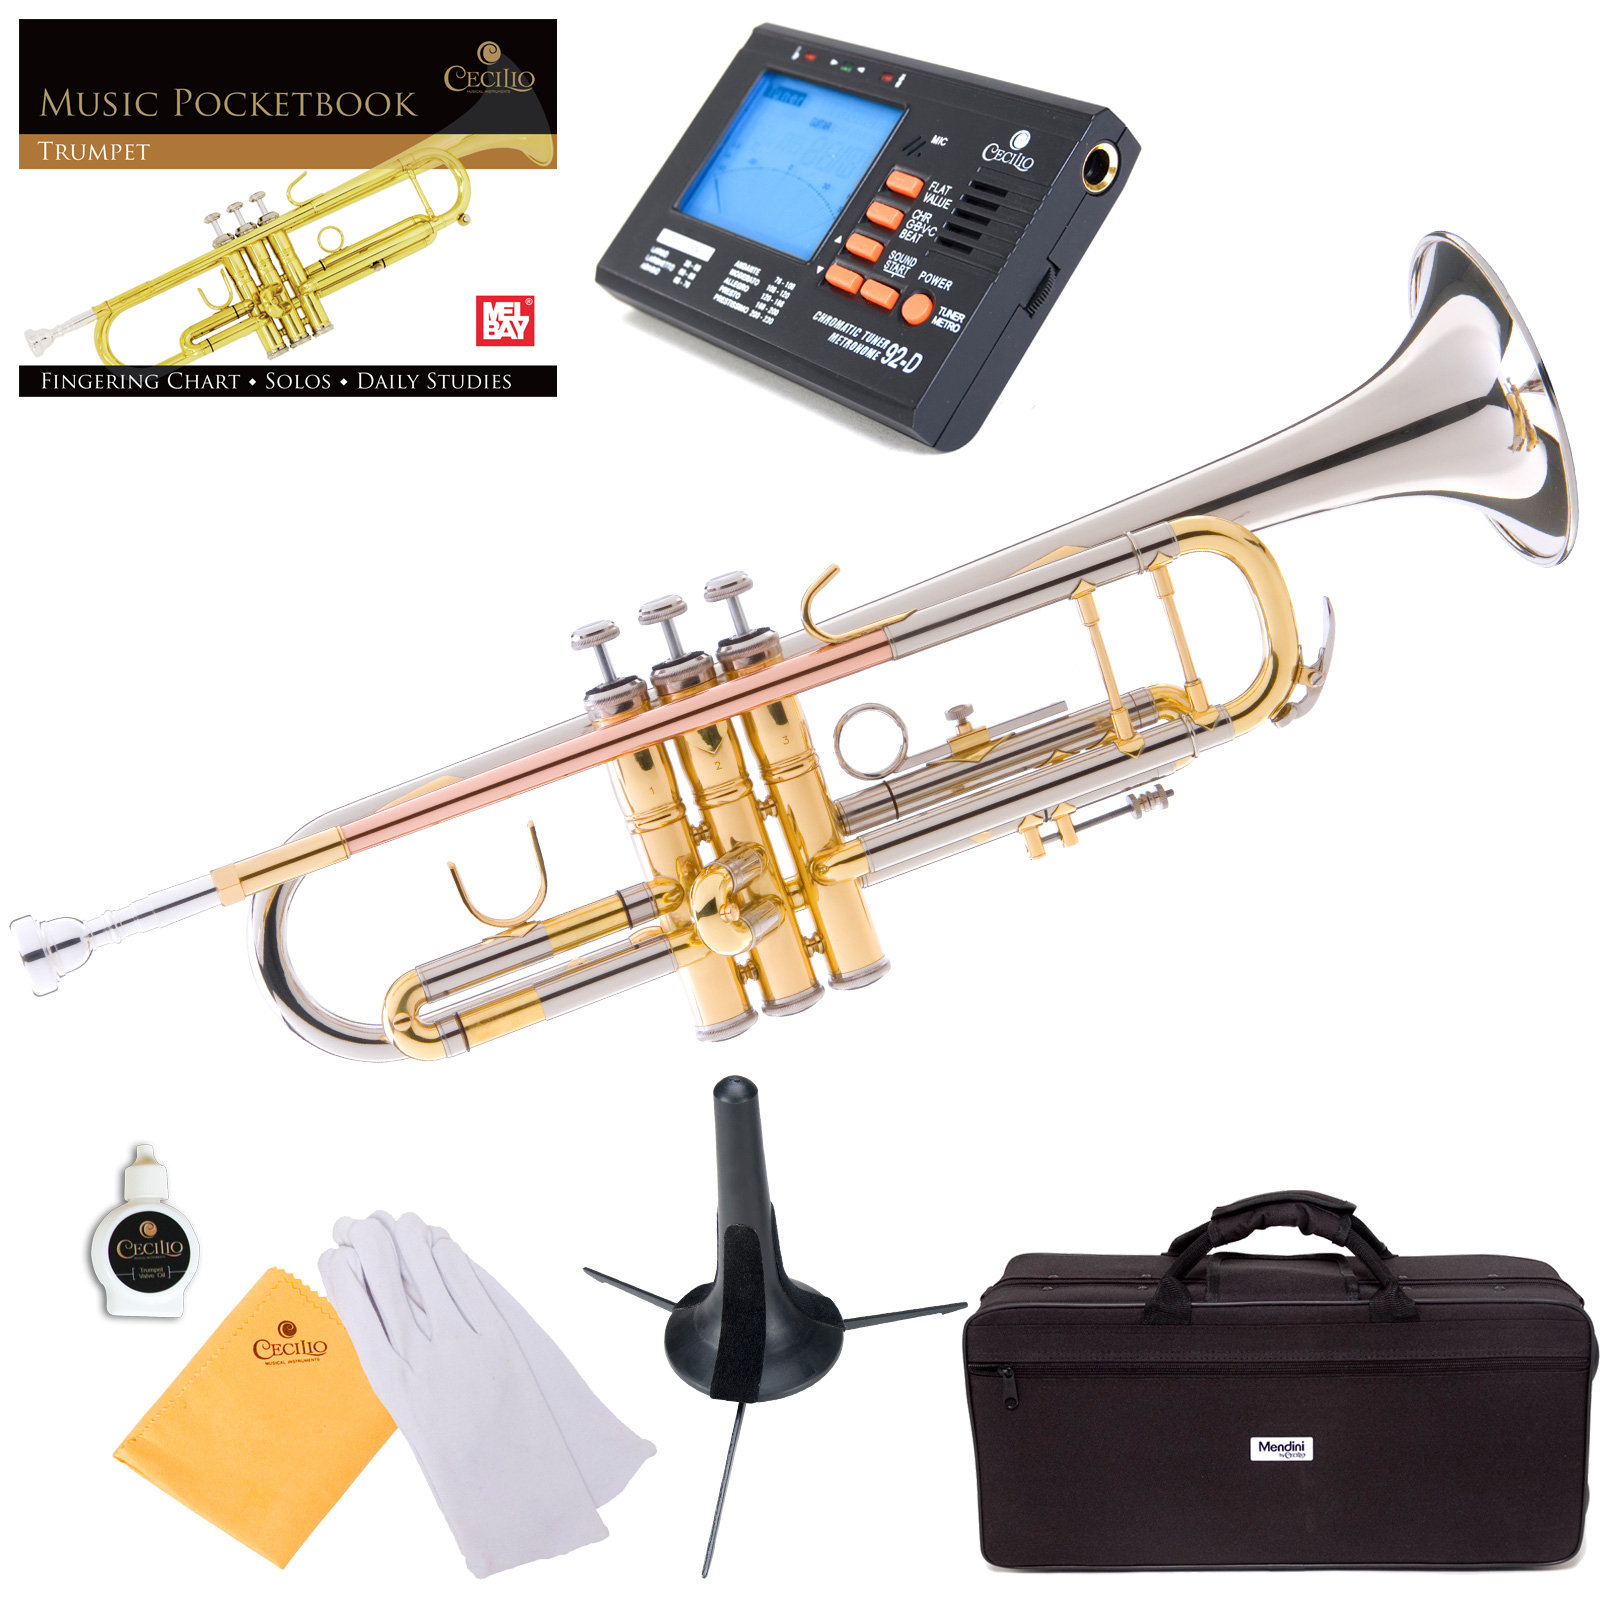 Mendini by Cecilio MTT-30CN Double-Braced Bb Trumpet w/Tuner, Stand, Deluxe Case and 1 Year Warranty